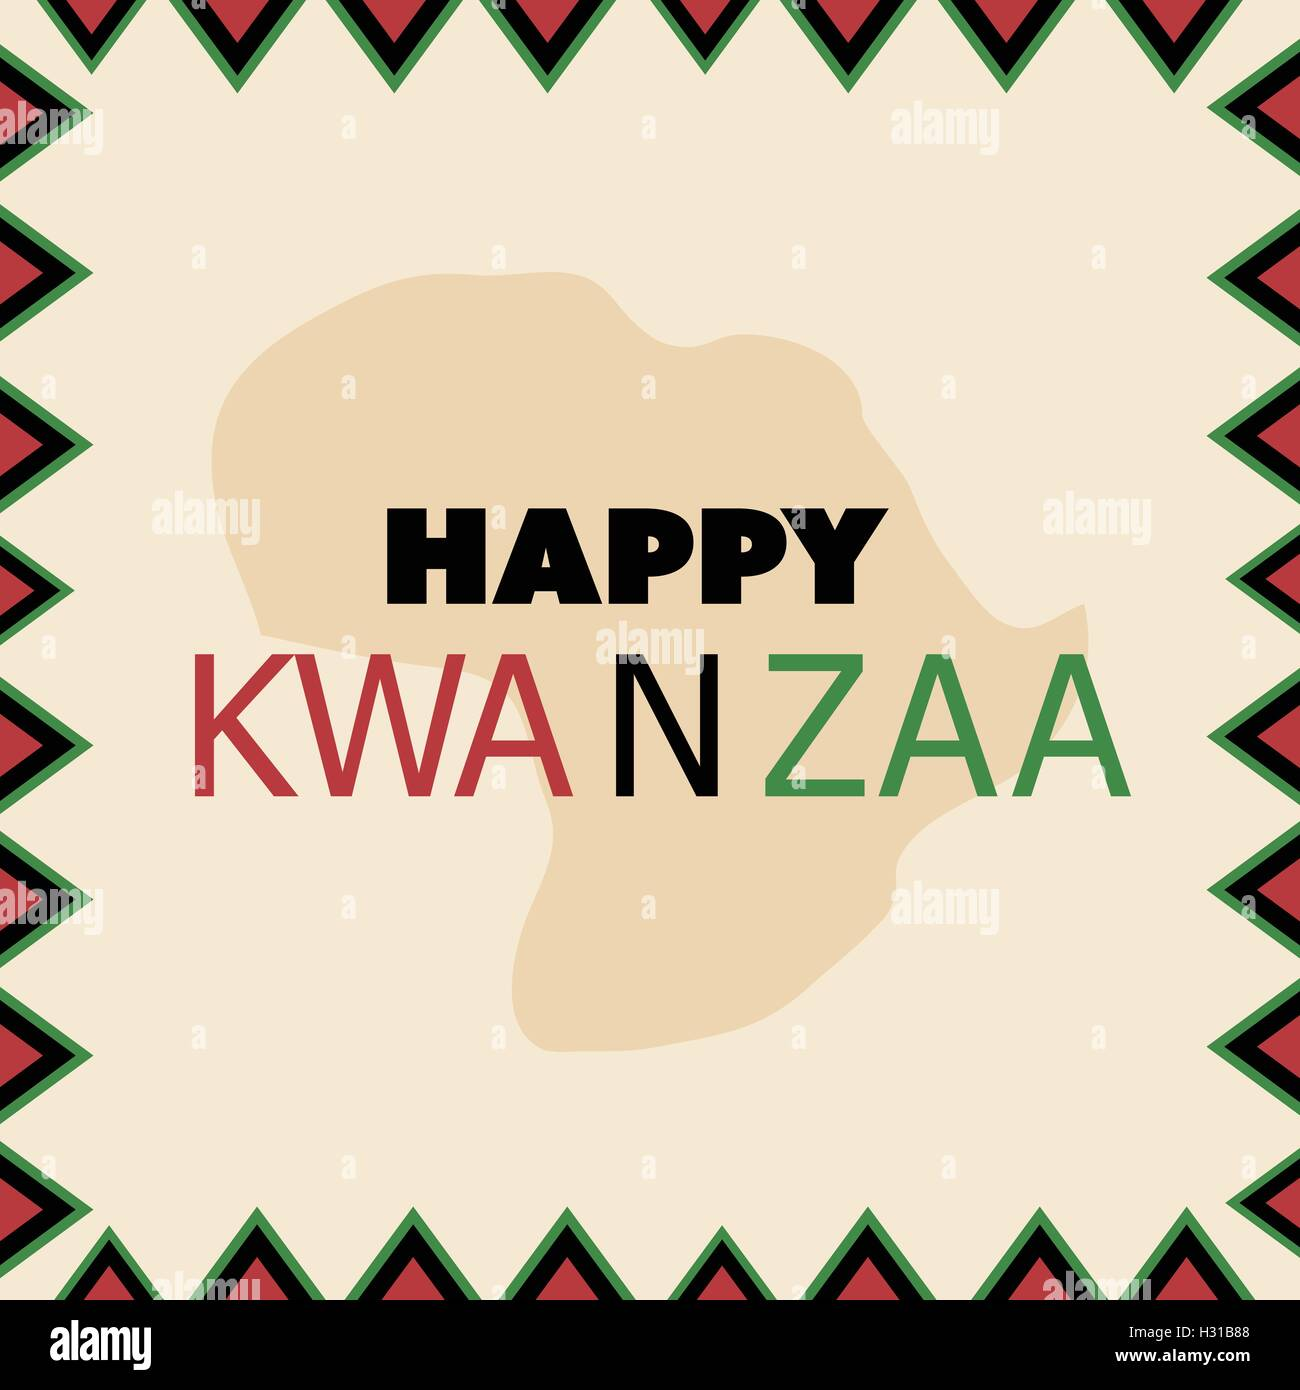 Kwanzaa family stock photos kwanzaa family stock images alamy happy kwanzaa greeting card design template stock image m4hsunfo